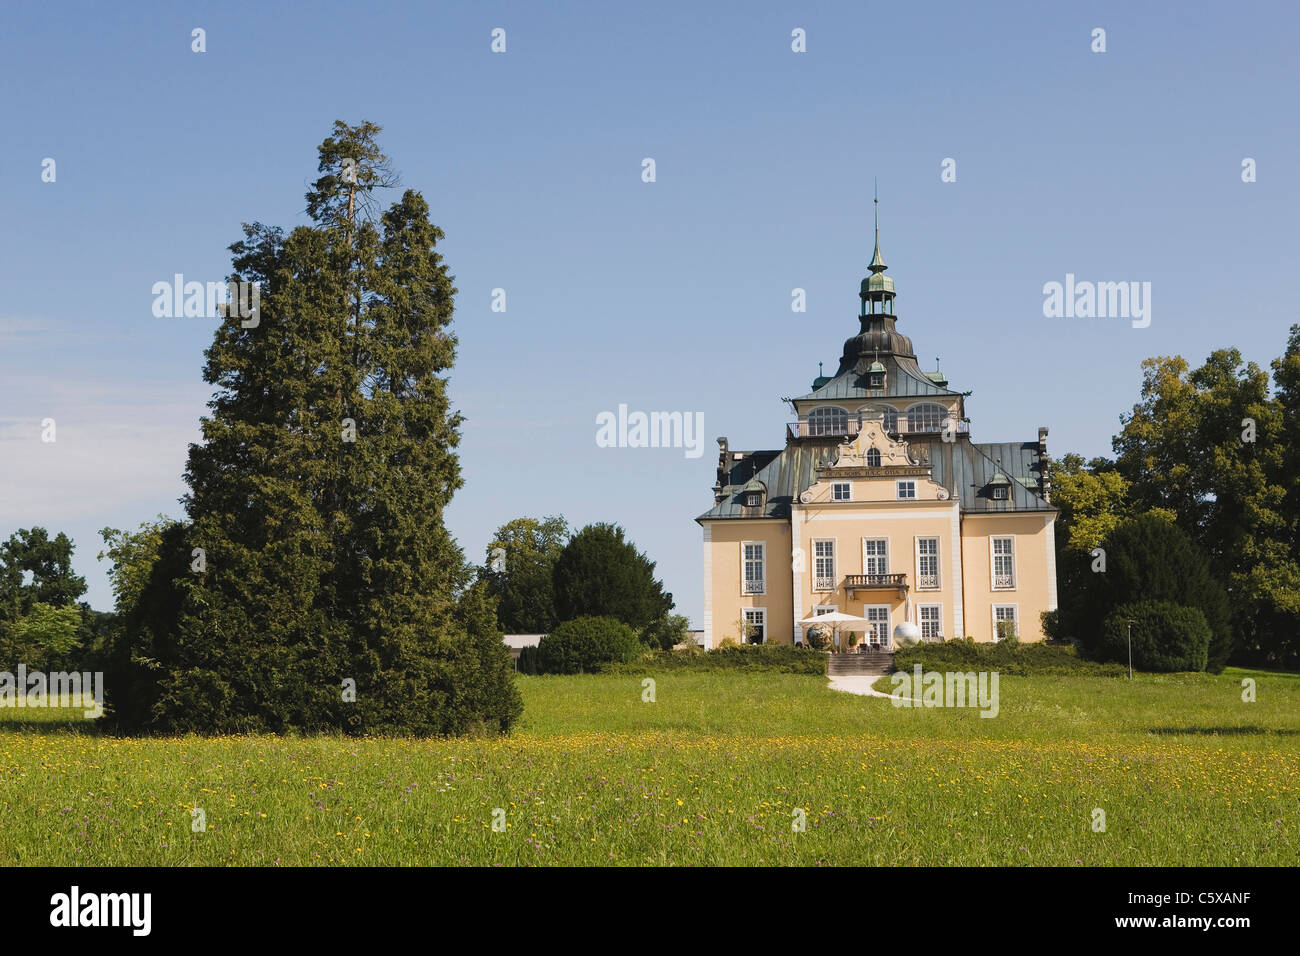 Villa Toscana Austria Gmunden Villa Toscana Congress Hall Stock Photo